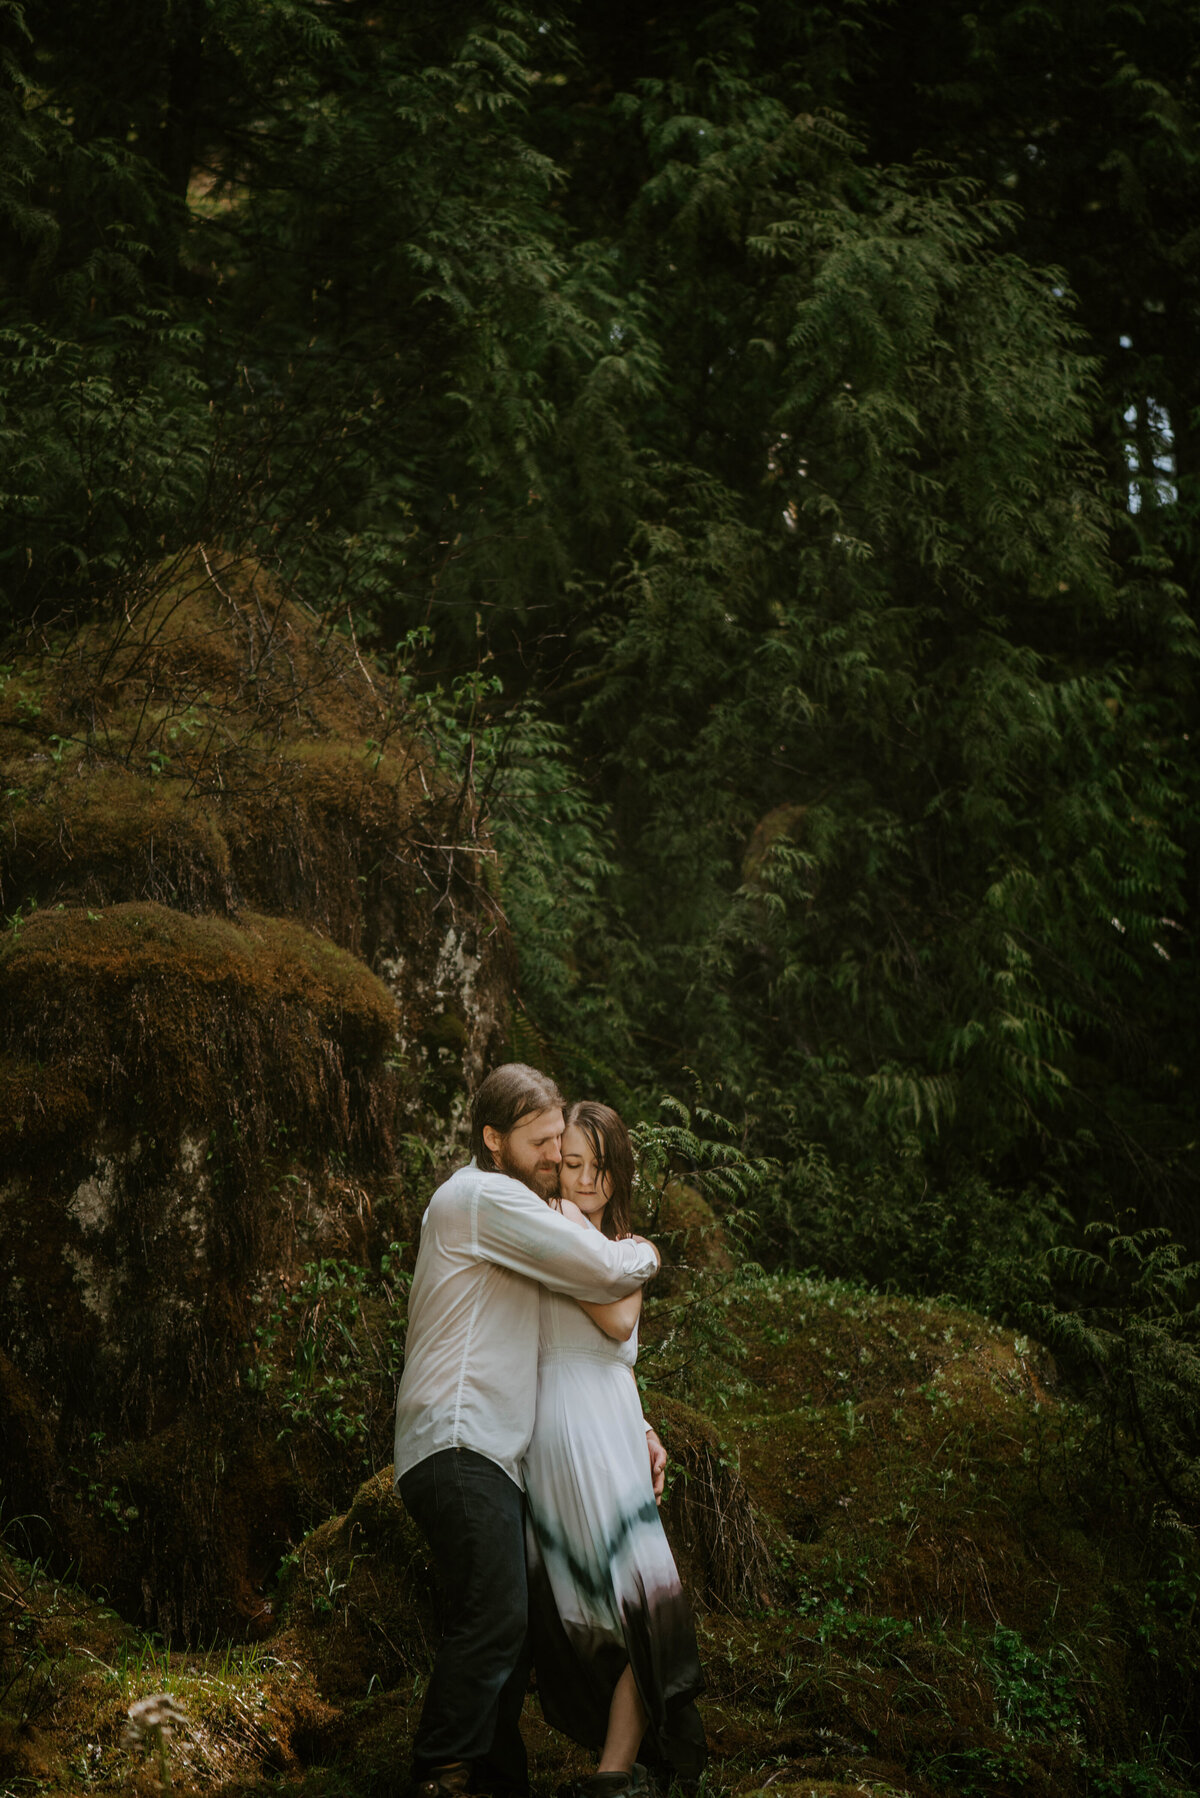 sahalie-falls-summer-oregon-photoshoot-adventure-photographer-bend-couple-forest-outfits-elopement-wedding8512